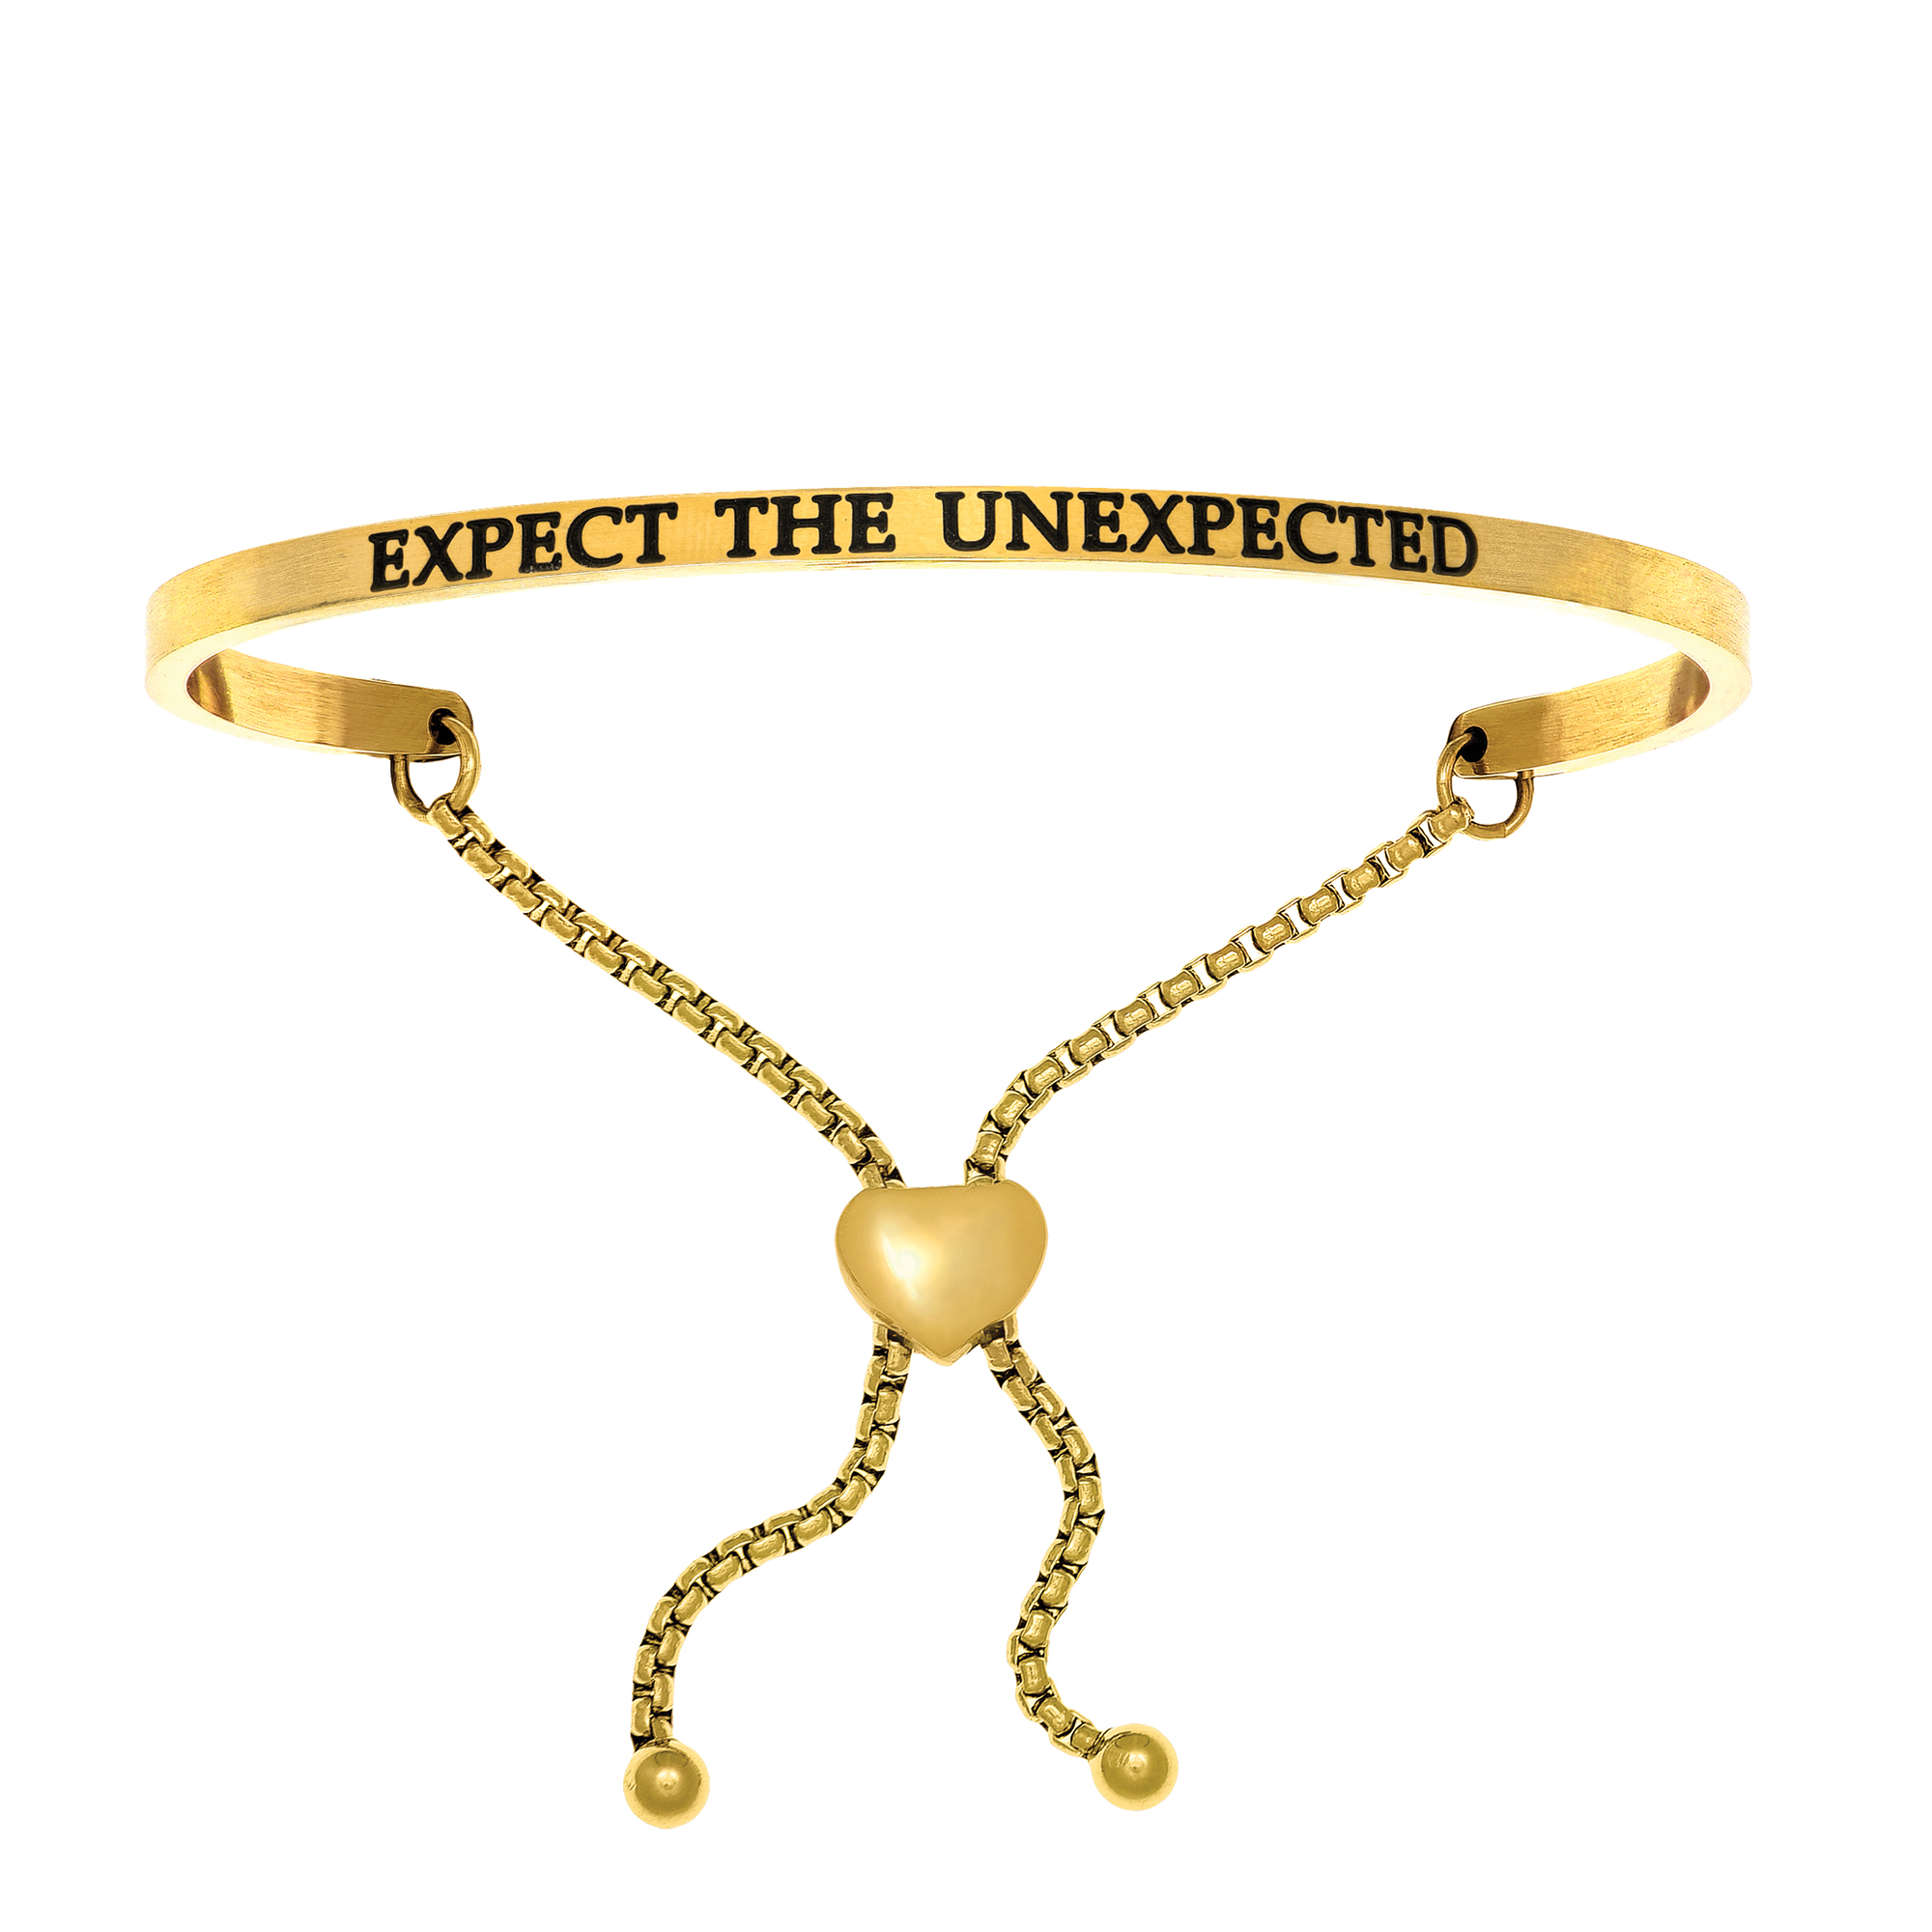 Intuitions Stainless Steel EXPECT THE UNEXPECTED Diamond Accent Adjustable Bracelet - image 1 de 1